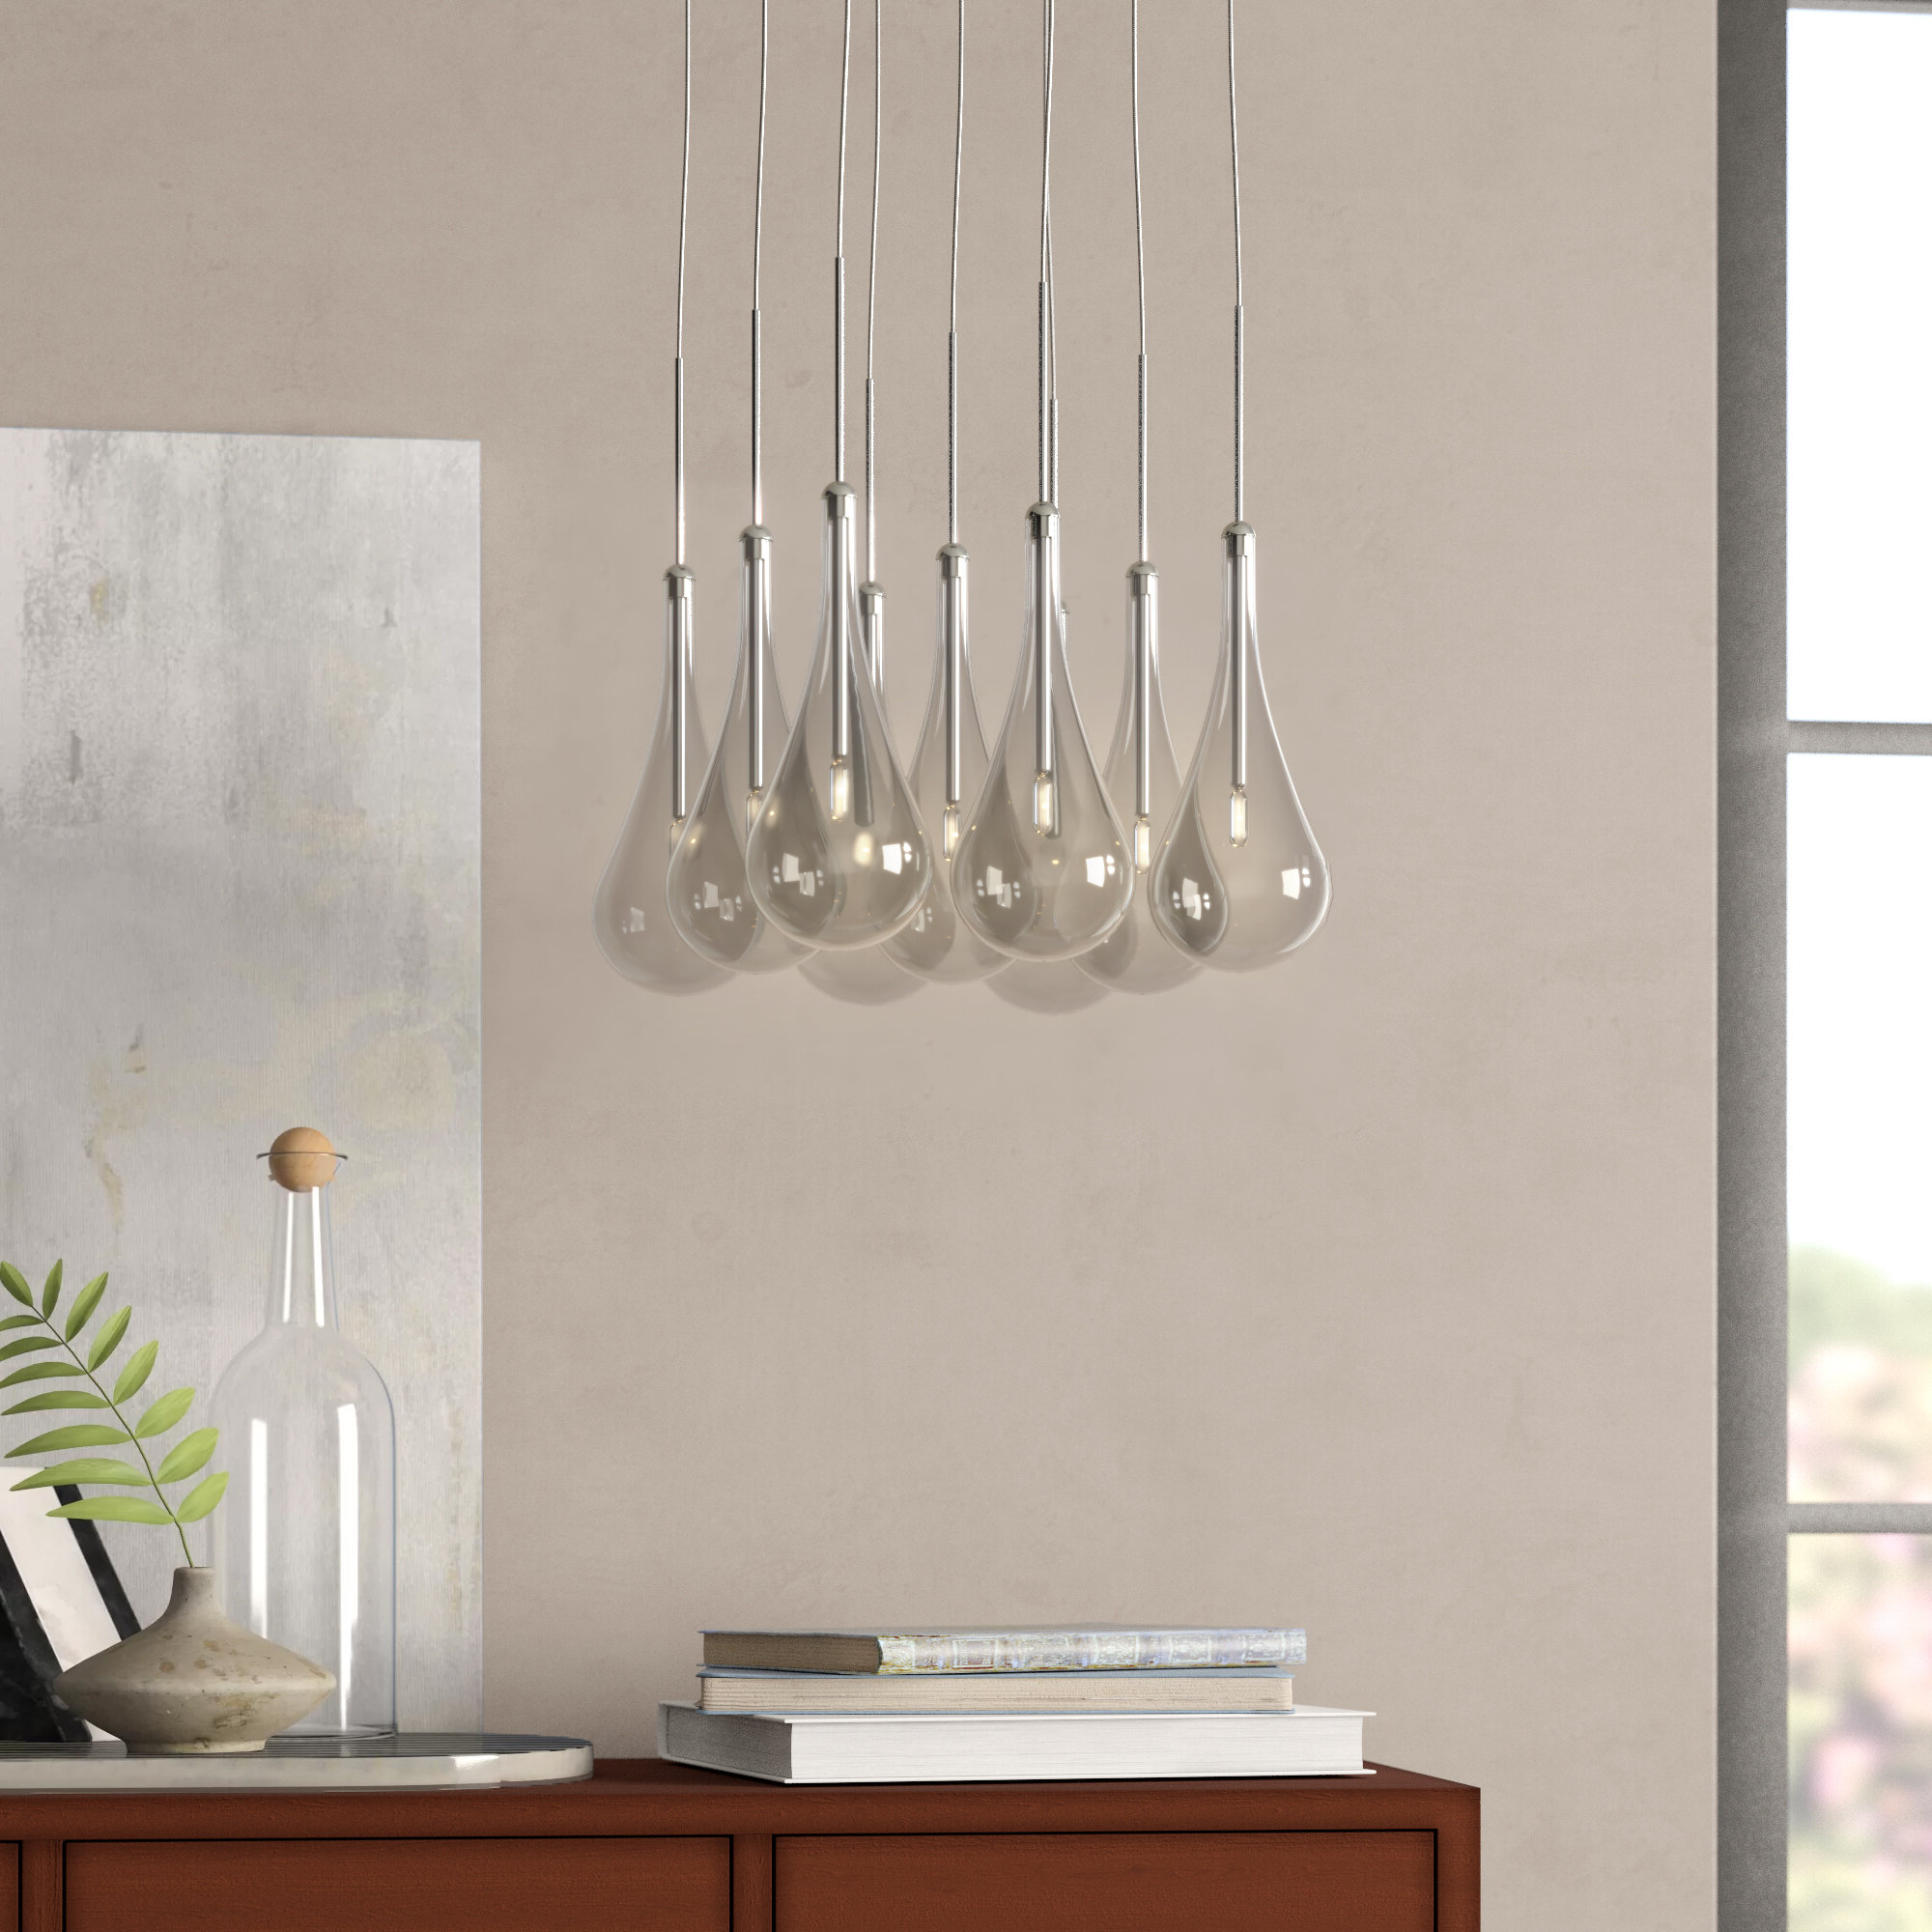 Neal 9 Light Pendant With Popular Neal 9 Light Kitchen Island Teardrop Pendants (View 14 of 20)